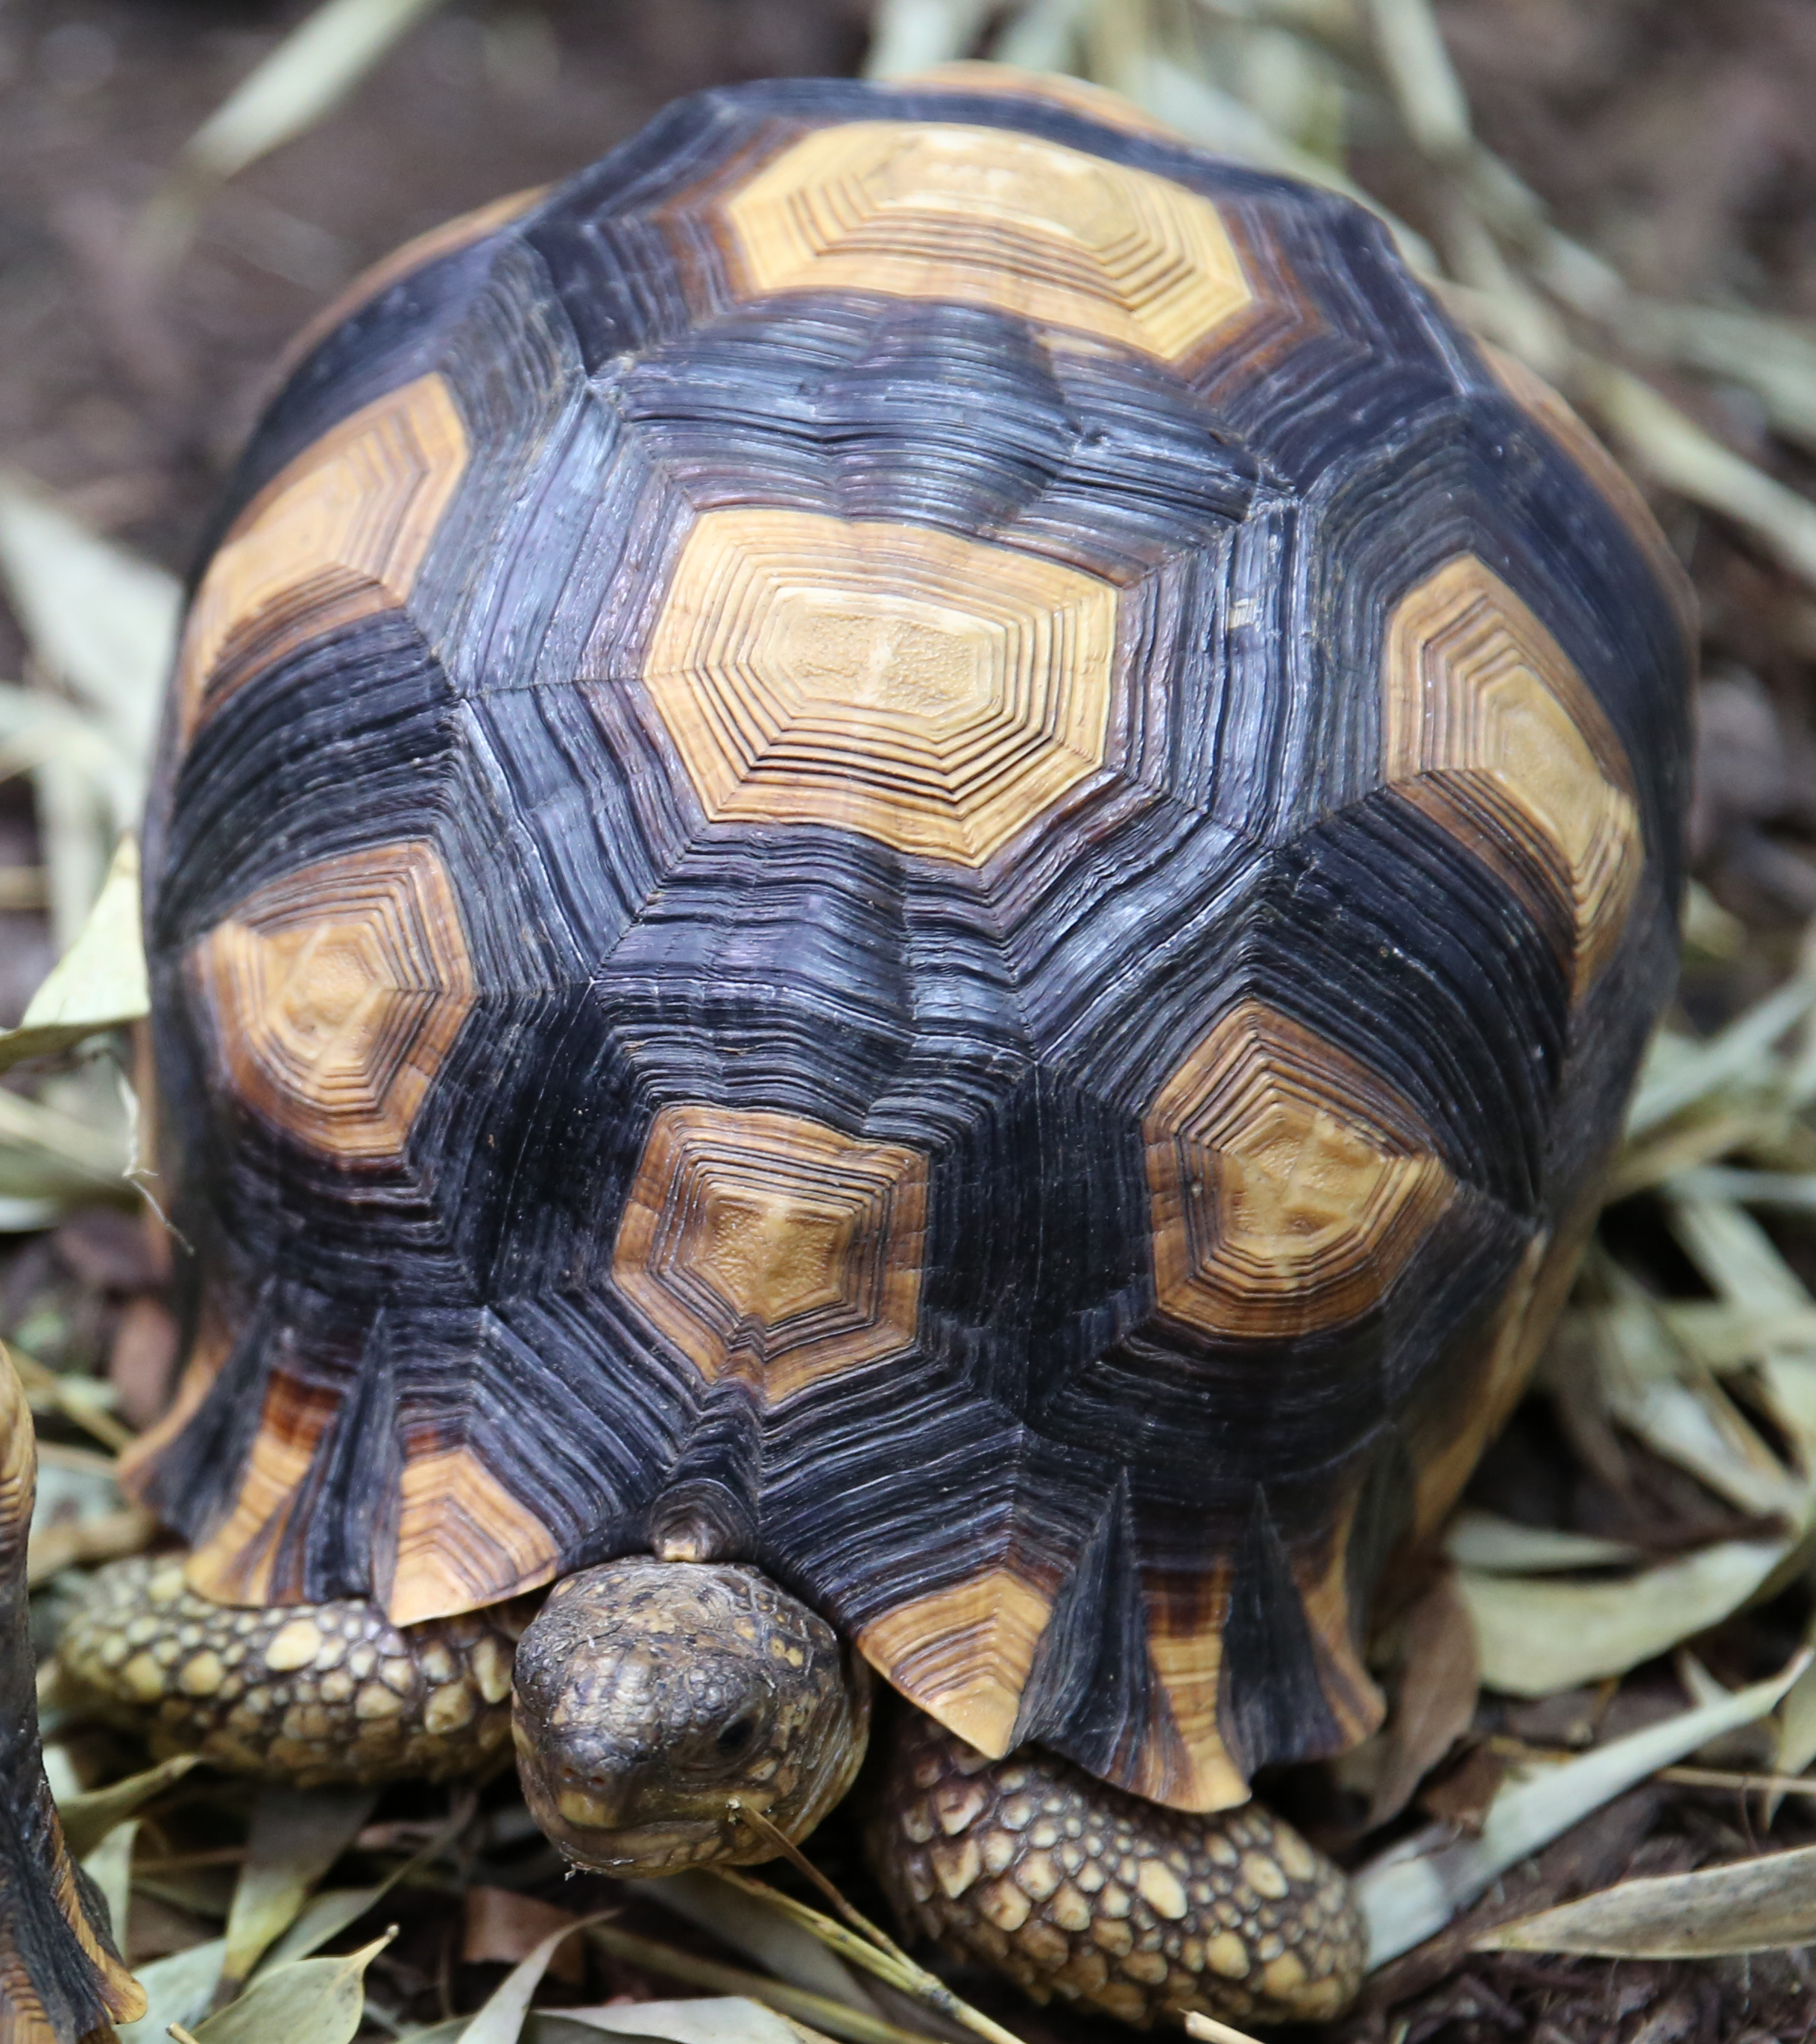 Ploughshare Tortoise Zoo Knoxville